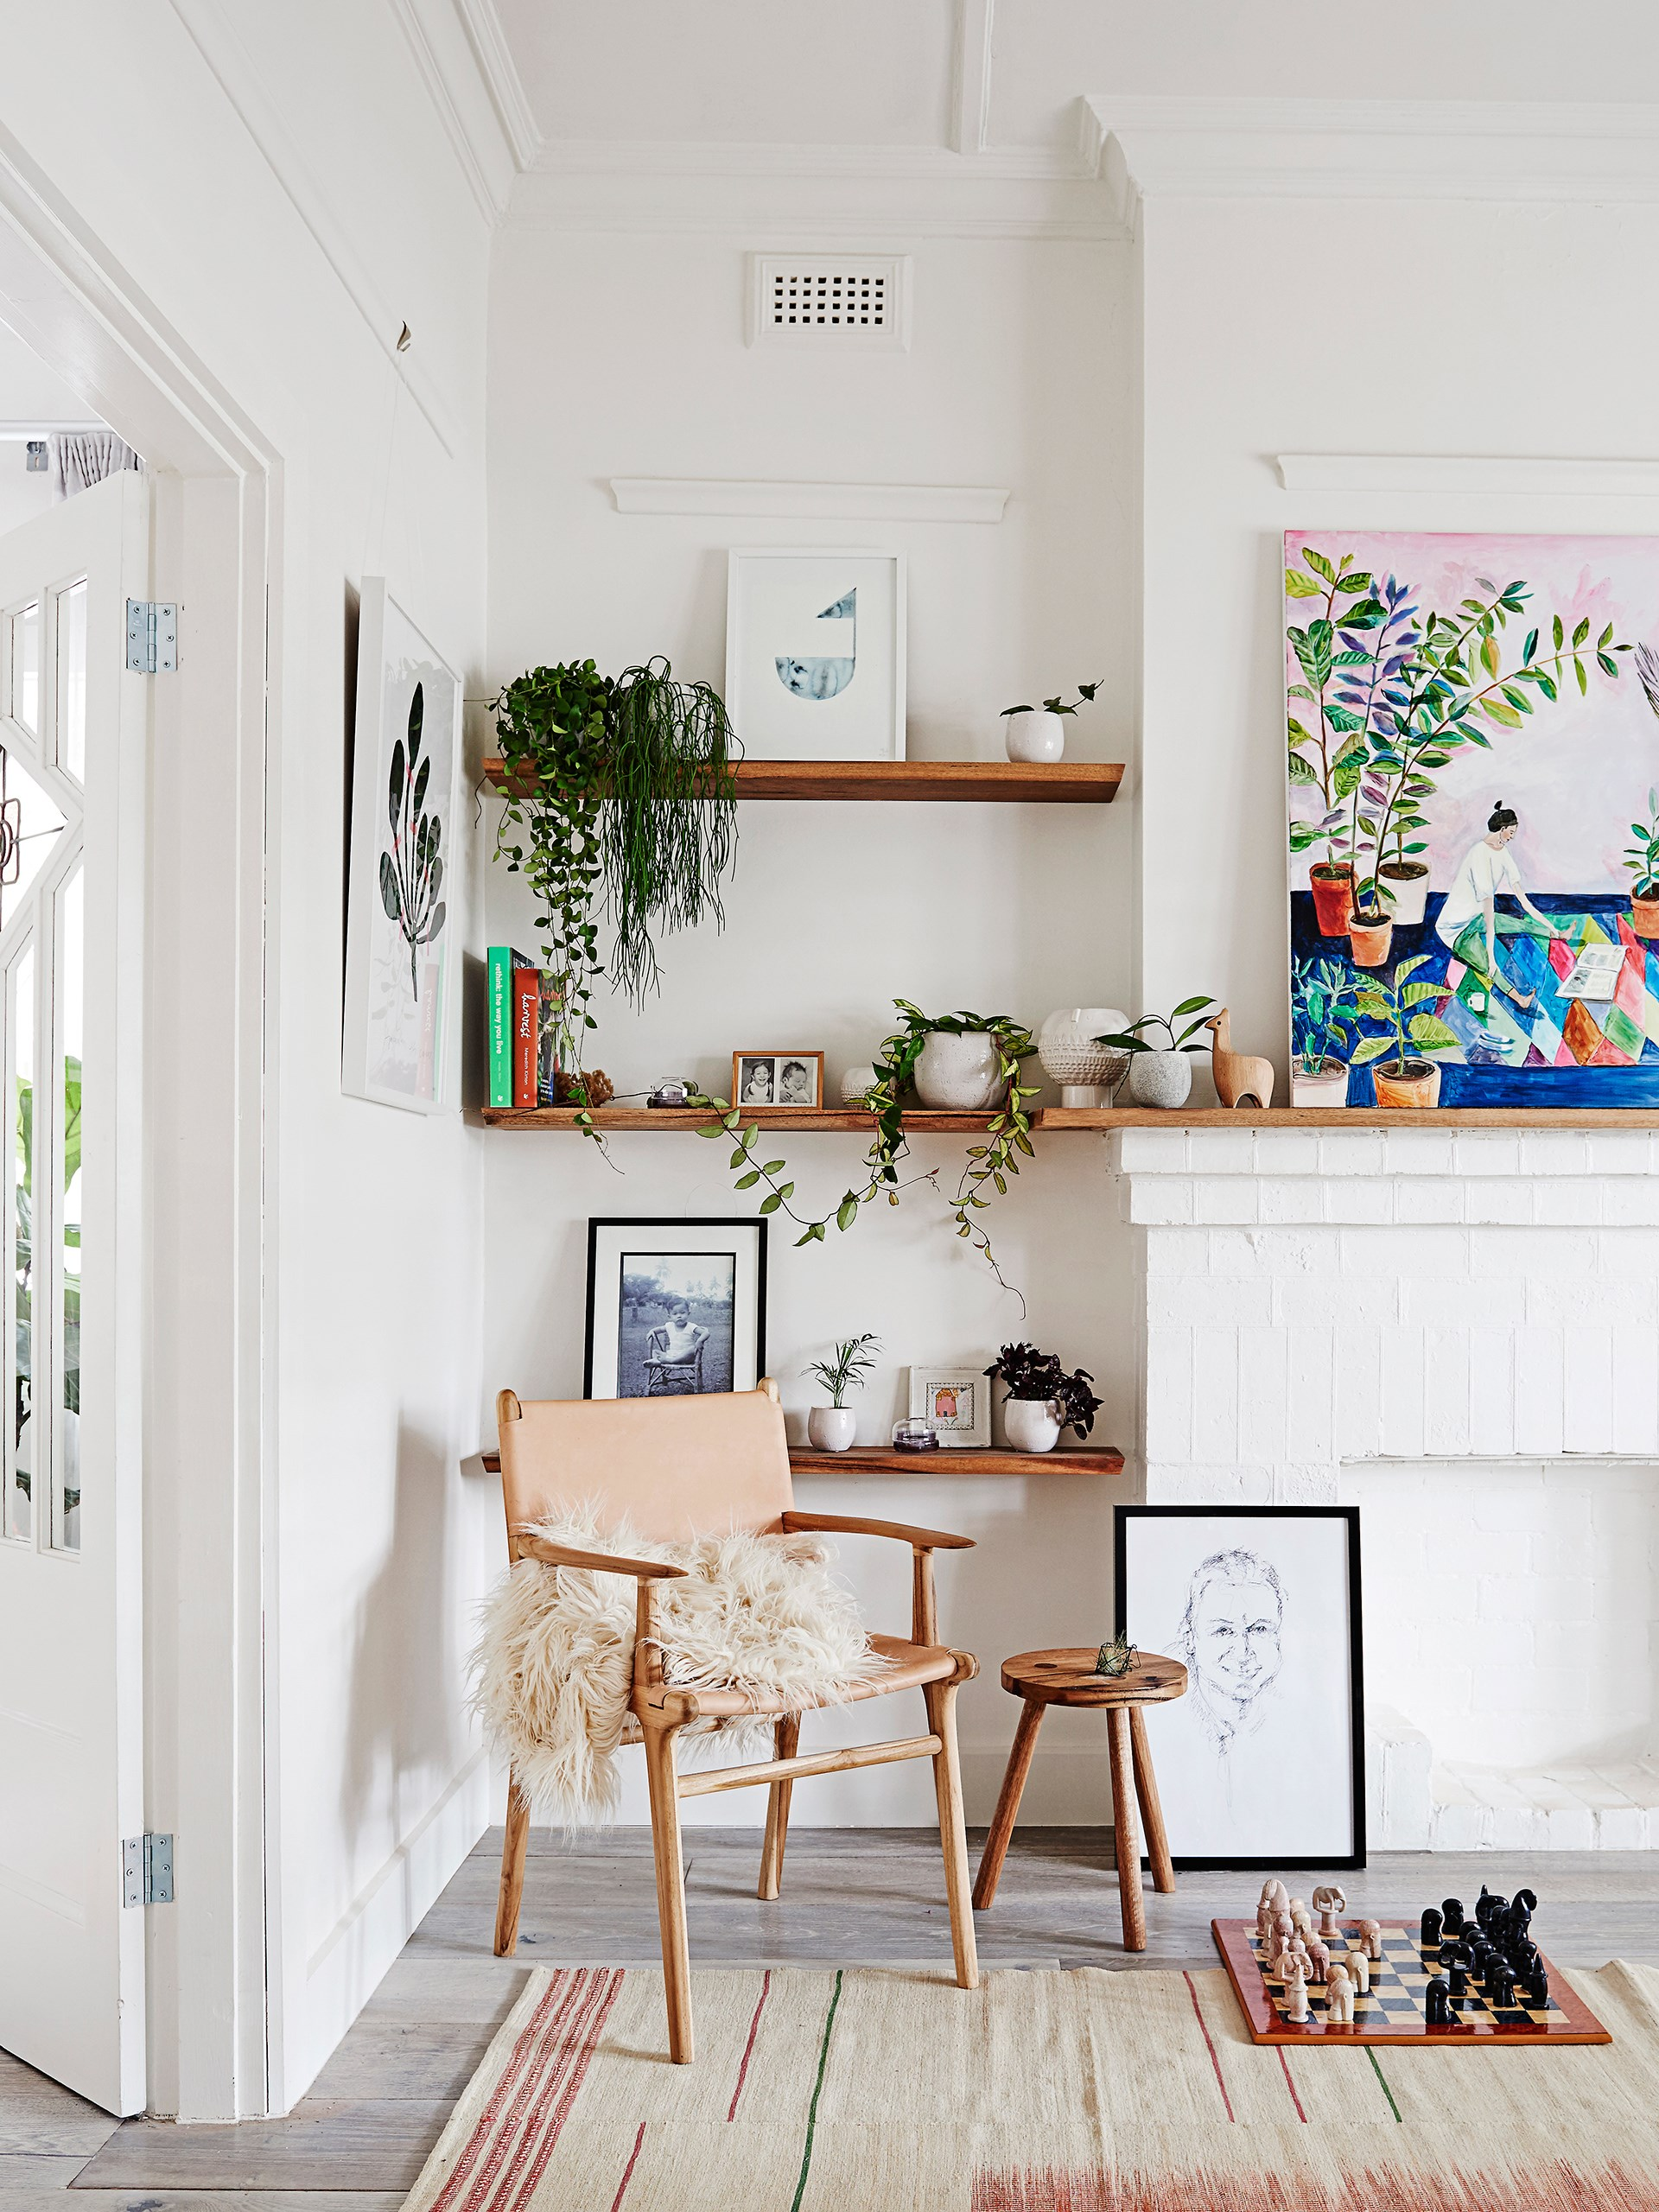 """The living room corner of [this California bungalow](http://www.homestolove.com.au/gallery-scandi-style-renovation-brings-bungalow-to-life-2053